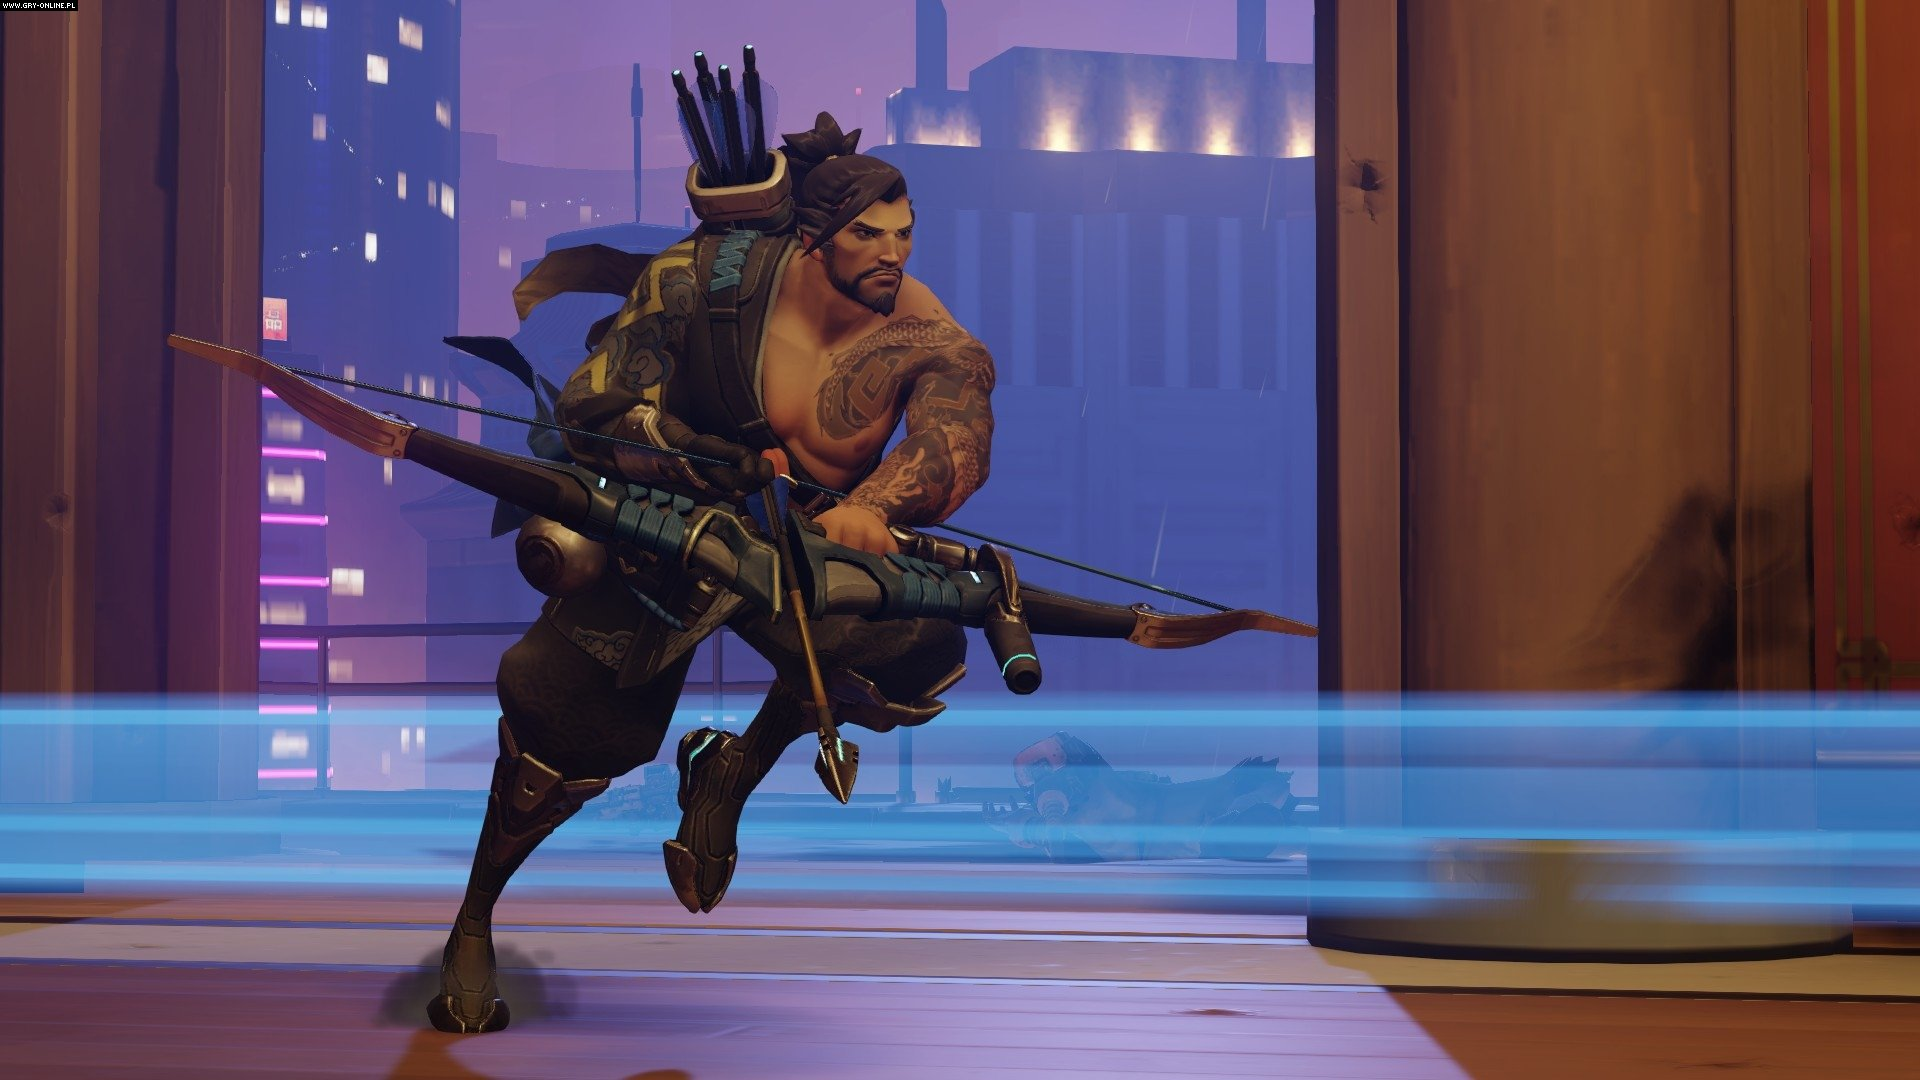 overwatch players are crashing servers to avoid losses in new